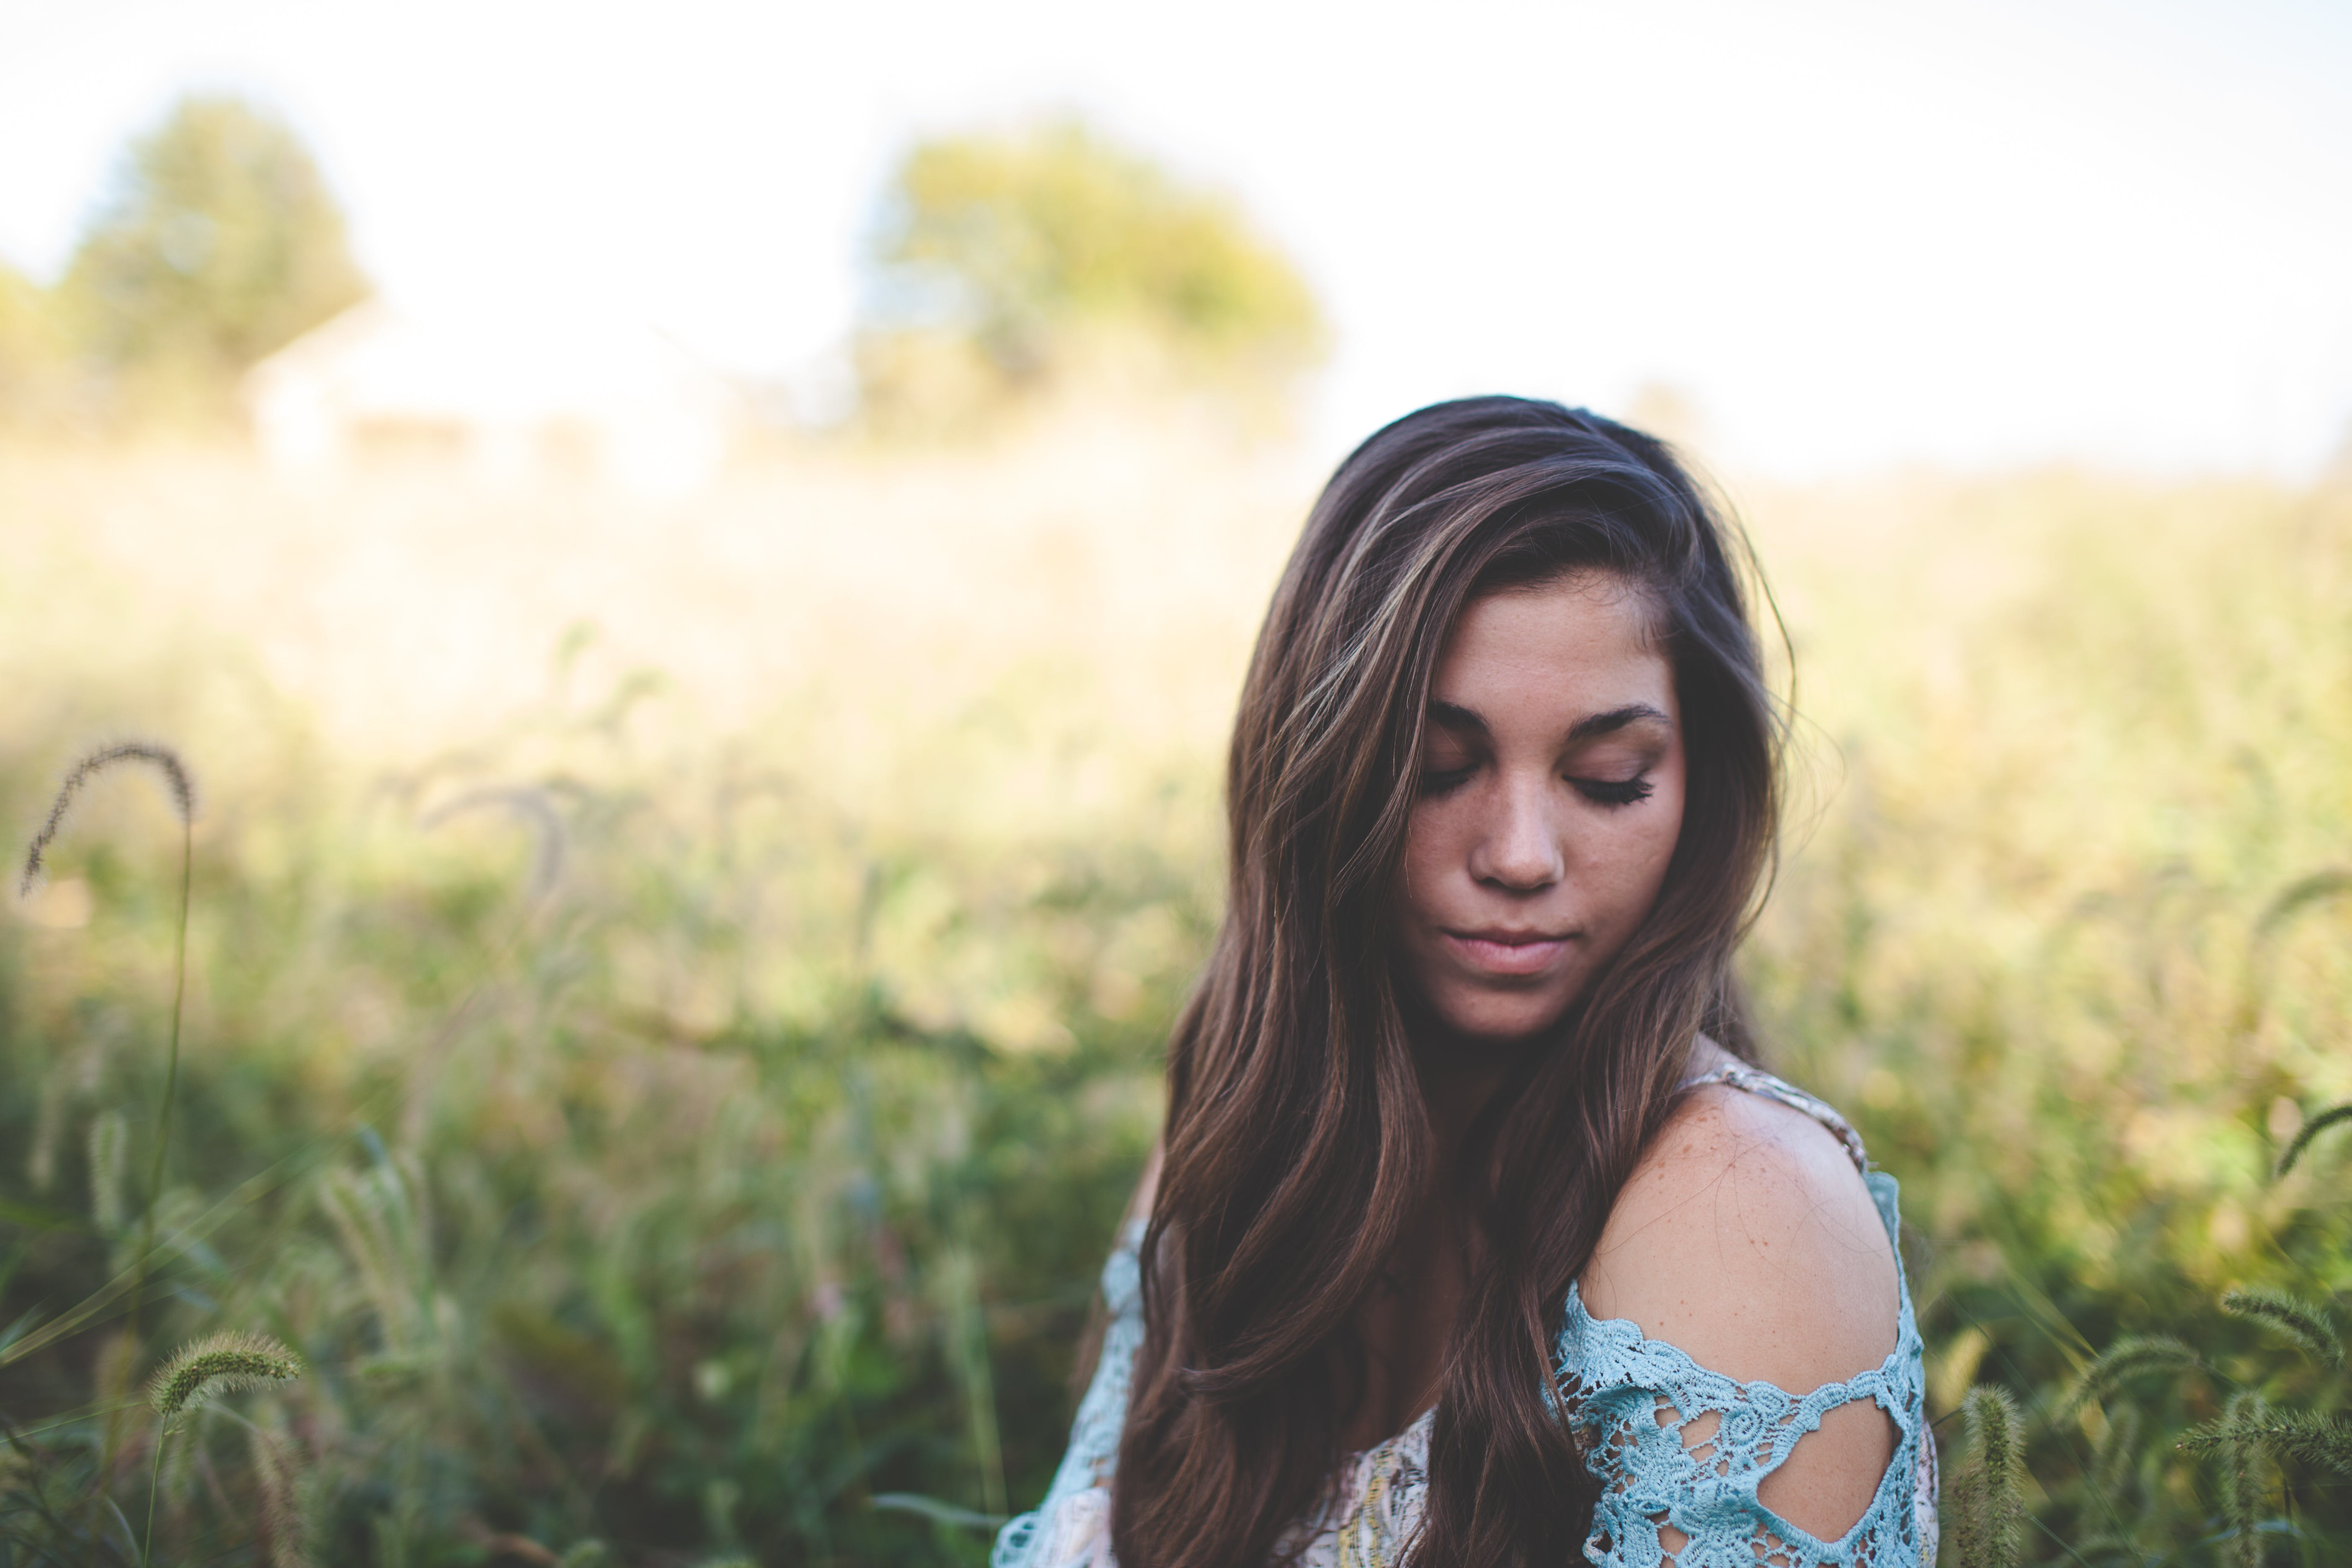 Woman Wearing Teal Off Shoulder While Seating on Grass Photo